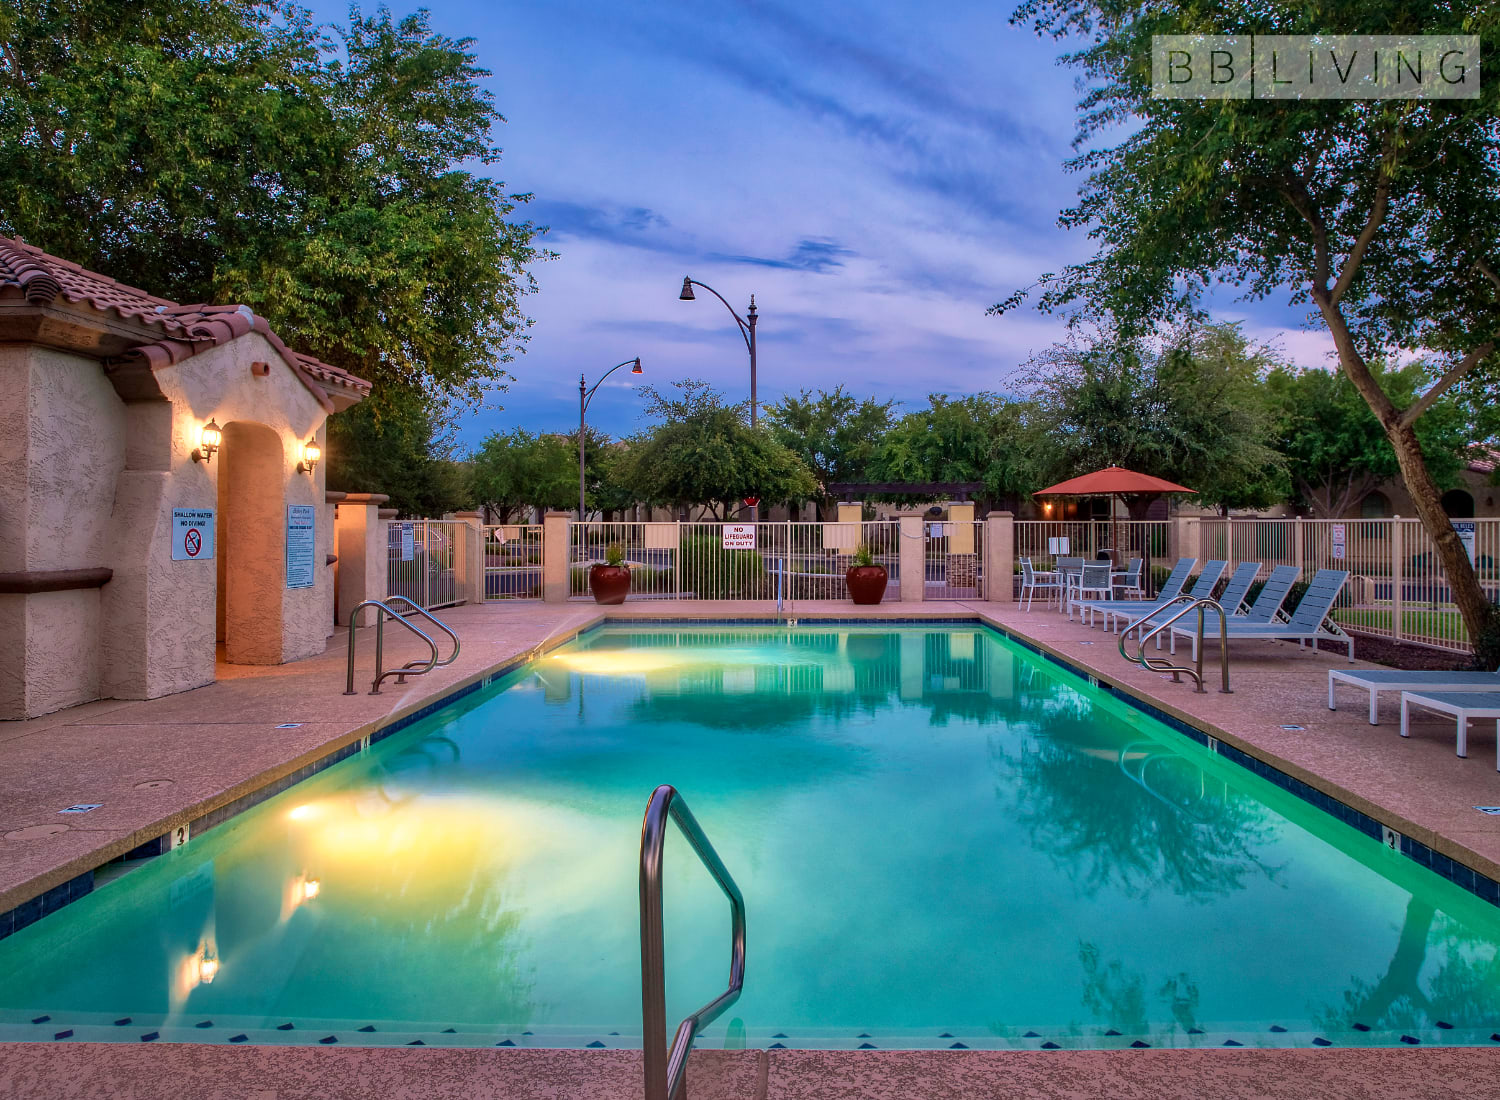 BB Living at Higley apartments in Gilbert, Arizona